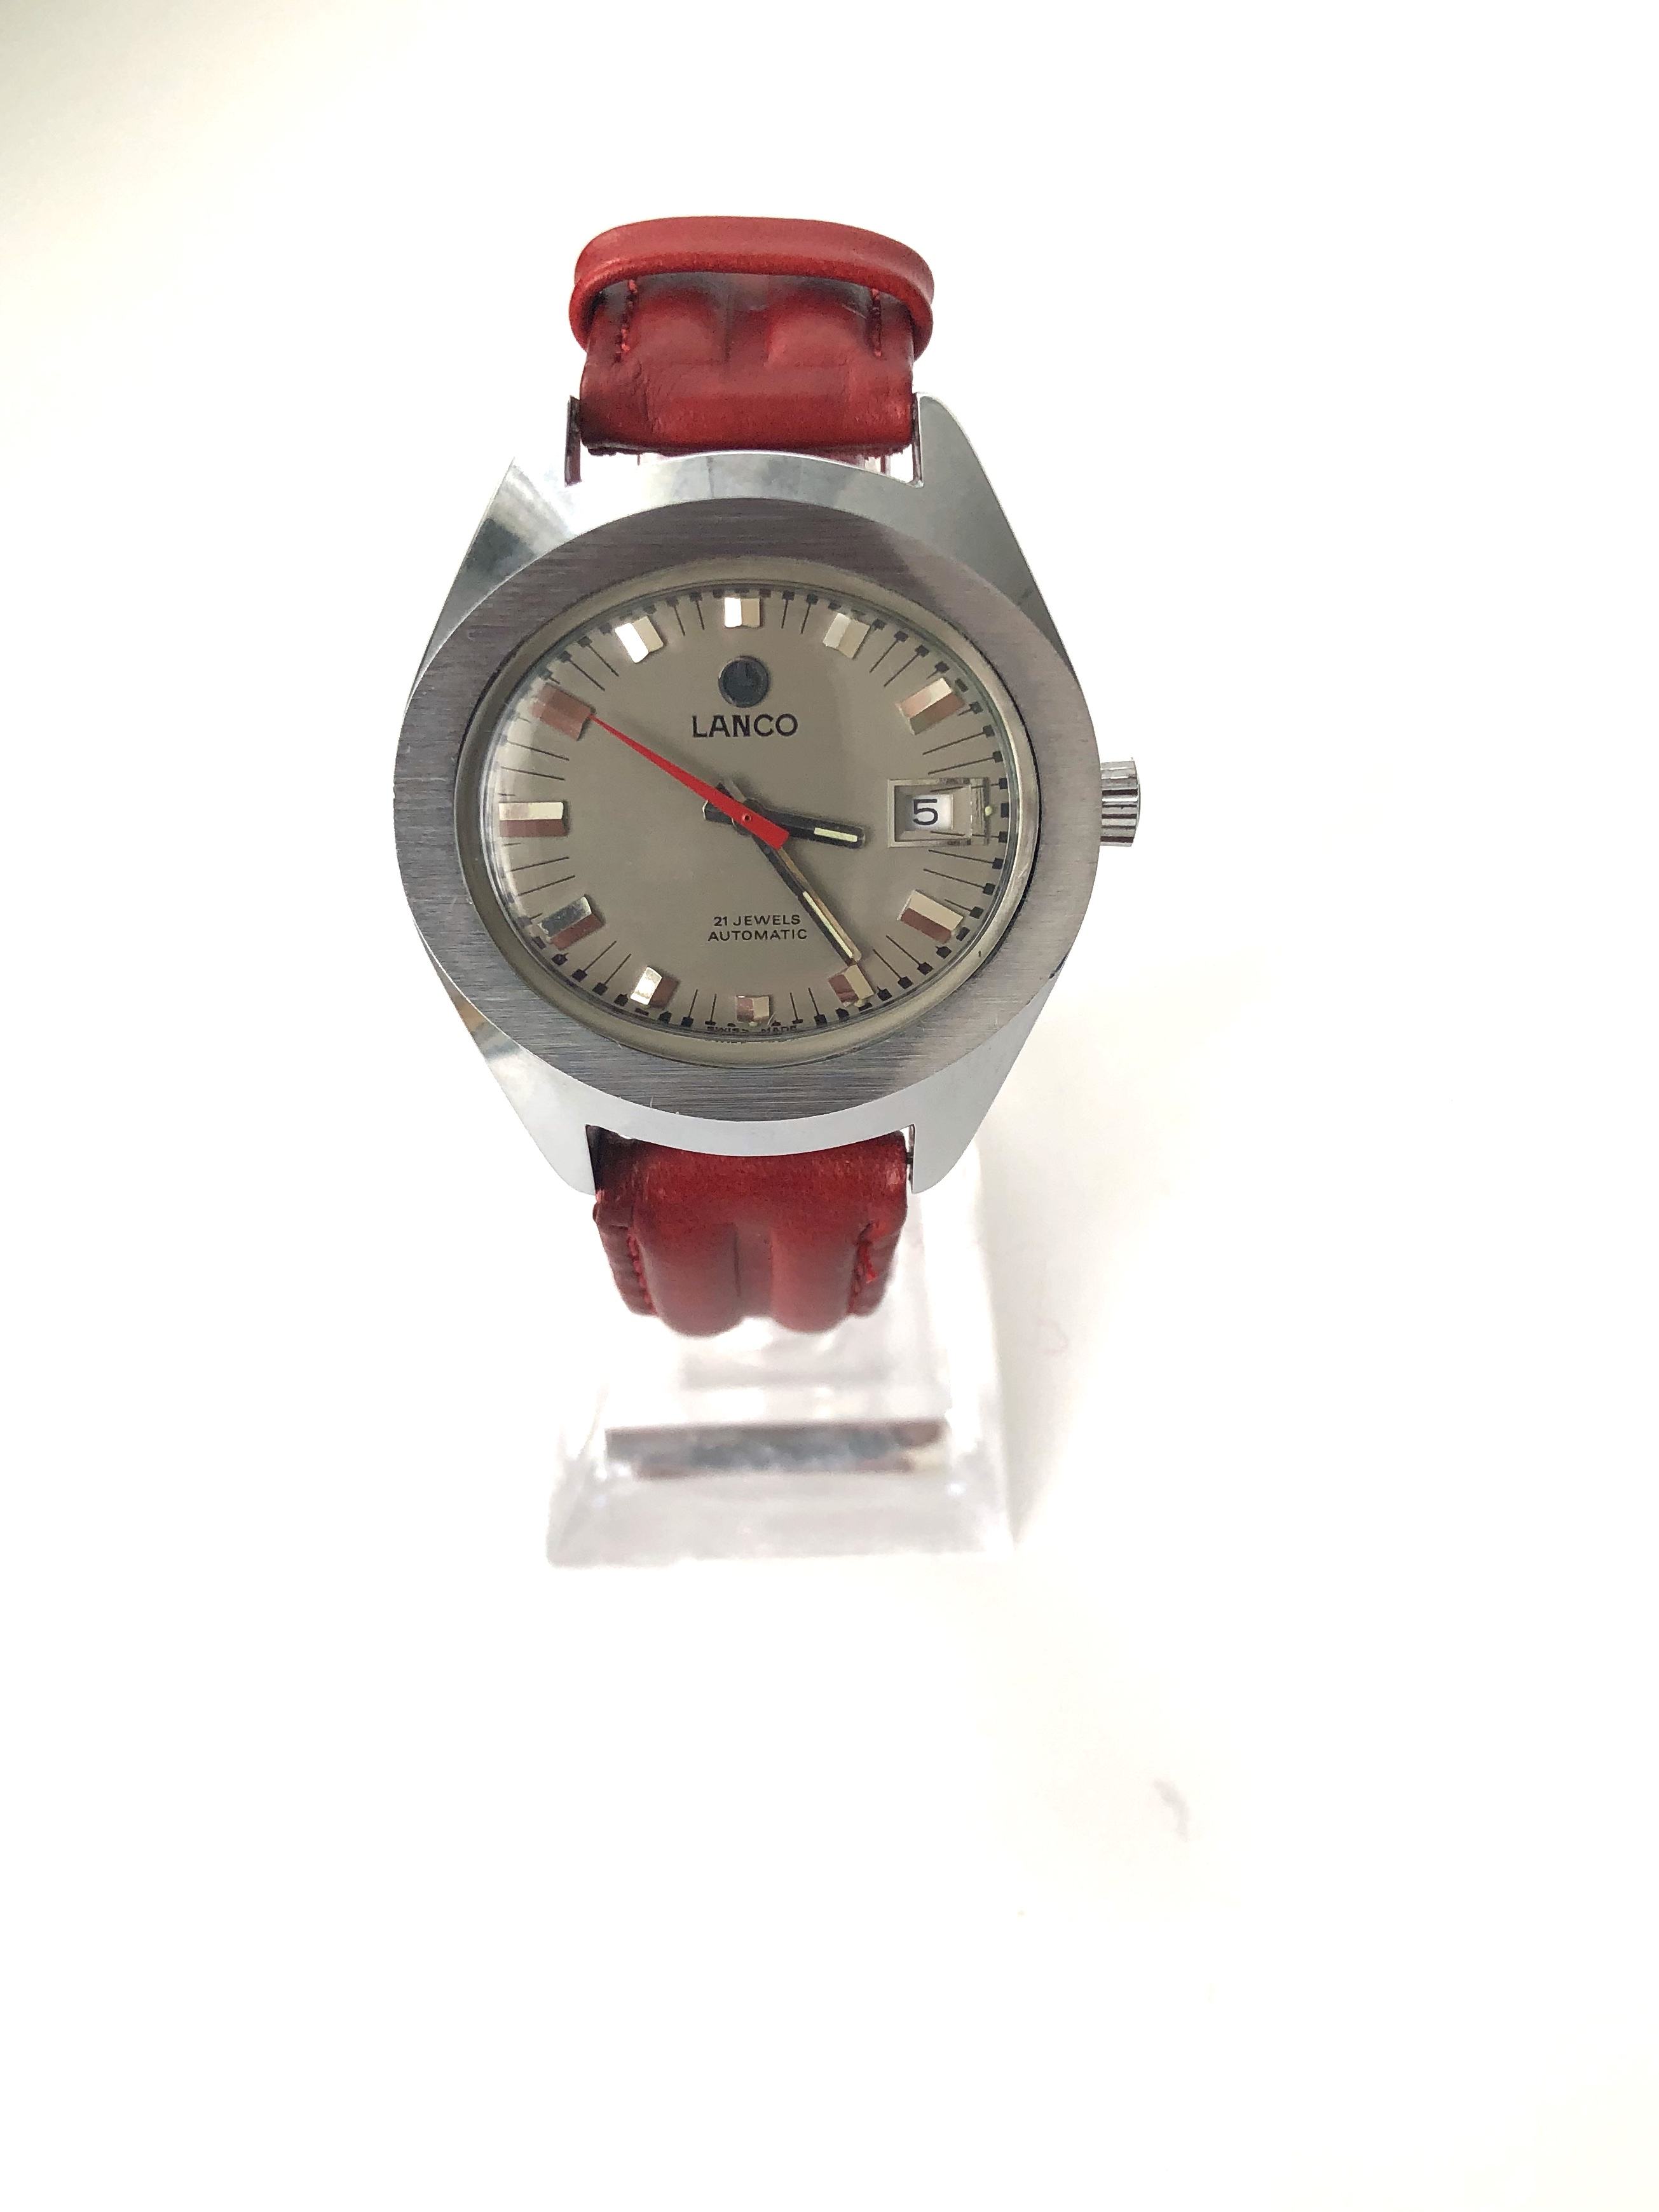 Lot 28 - Amazing & Rare Vintage Lanco Swiss Watch - Like new condition collectors dream